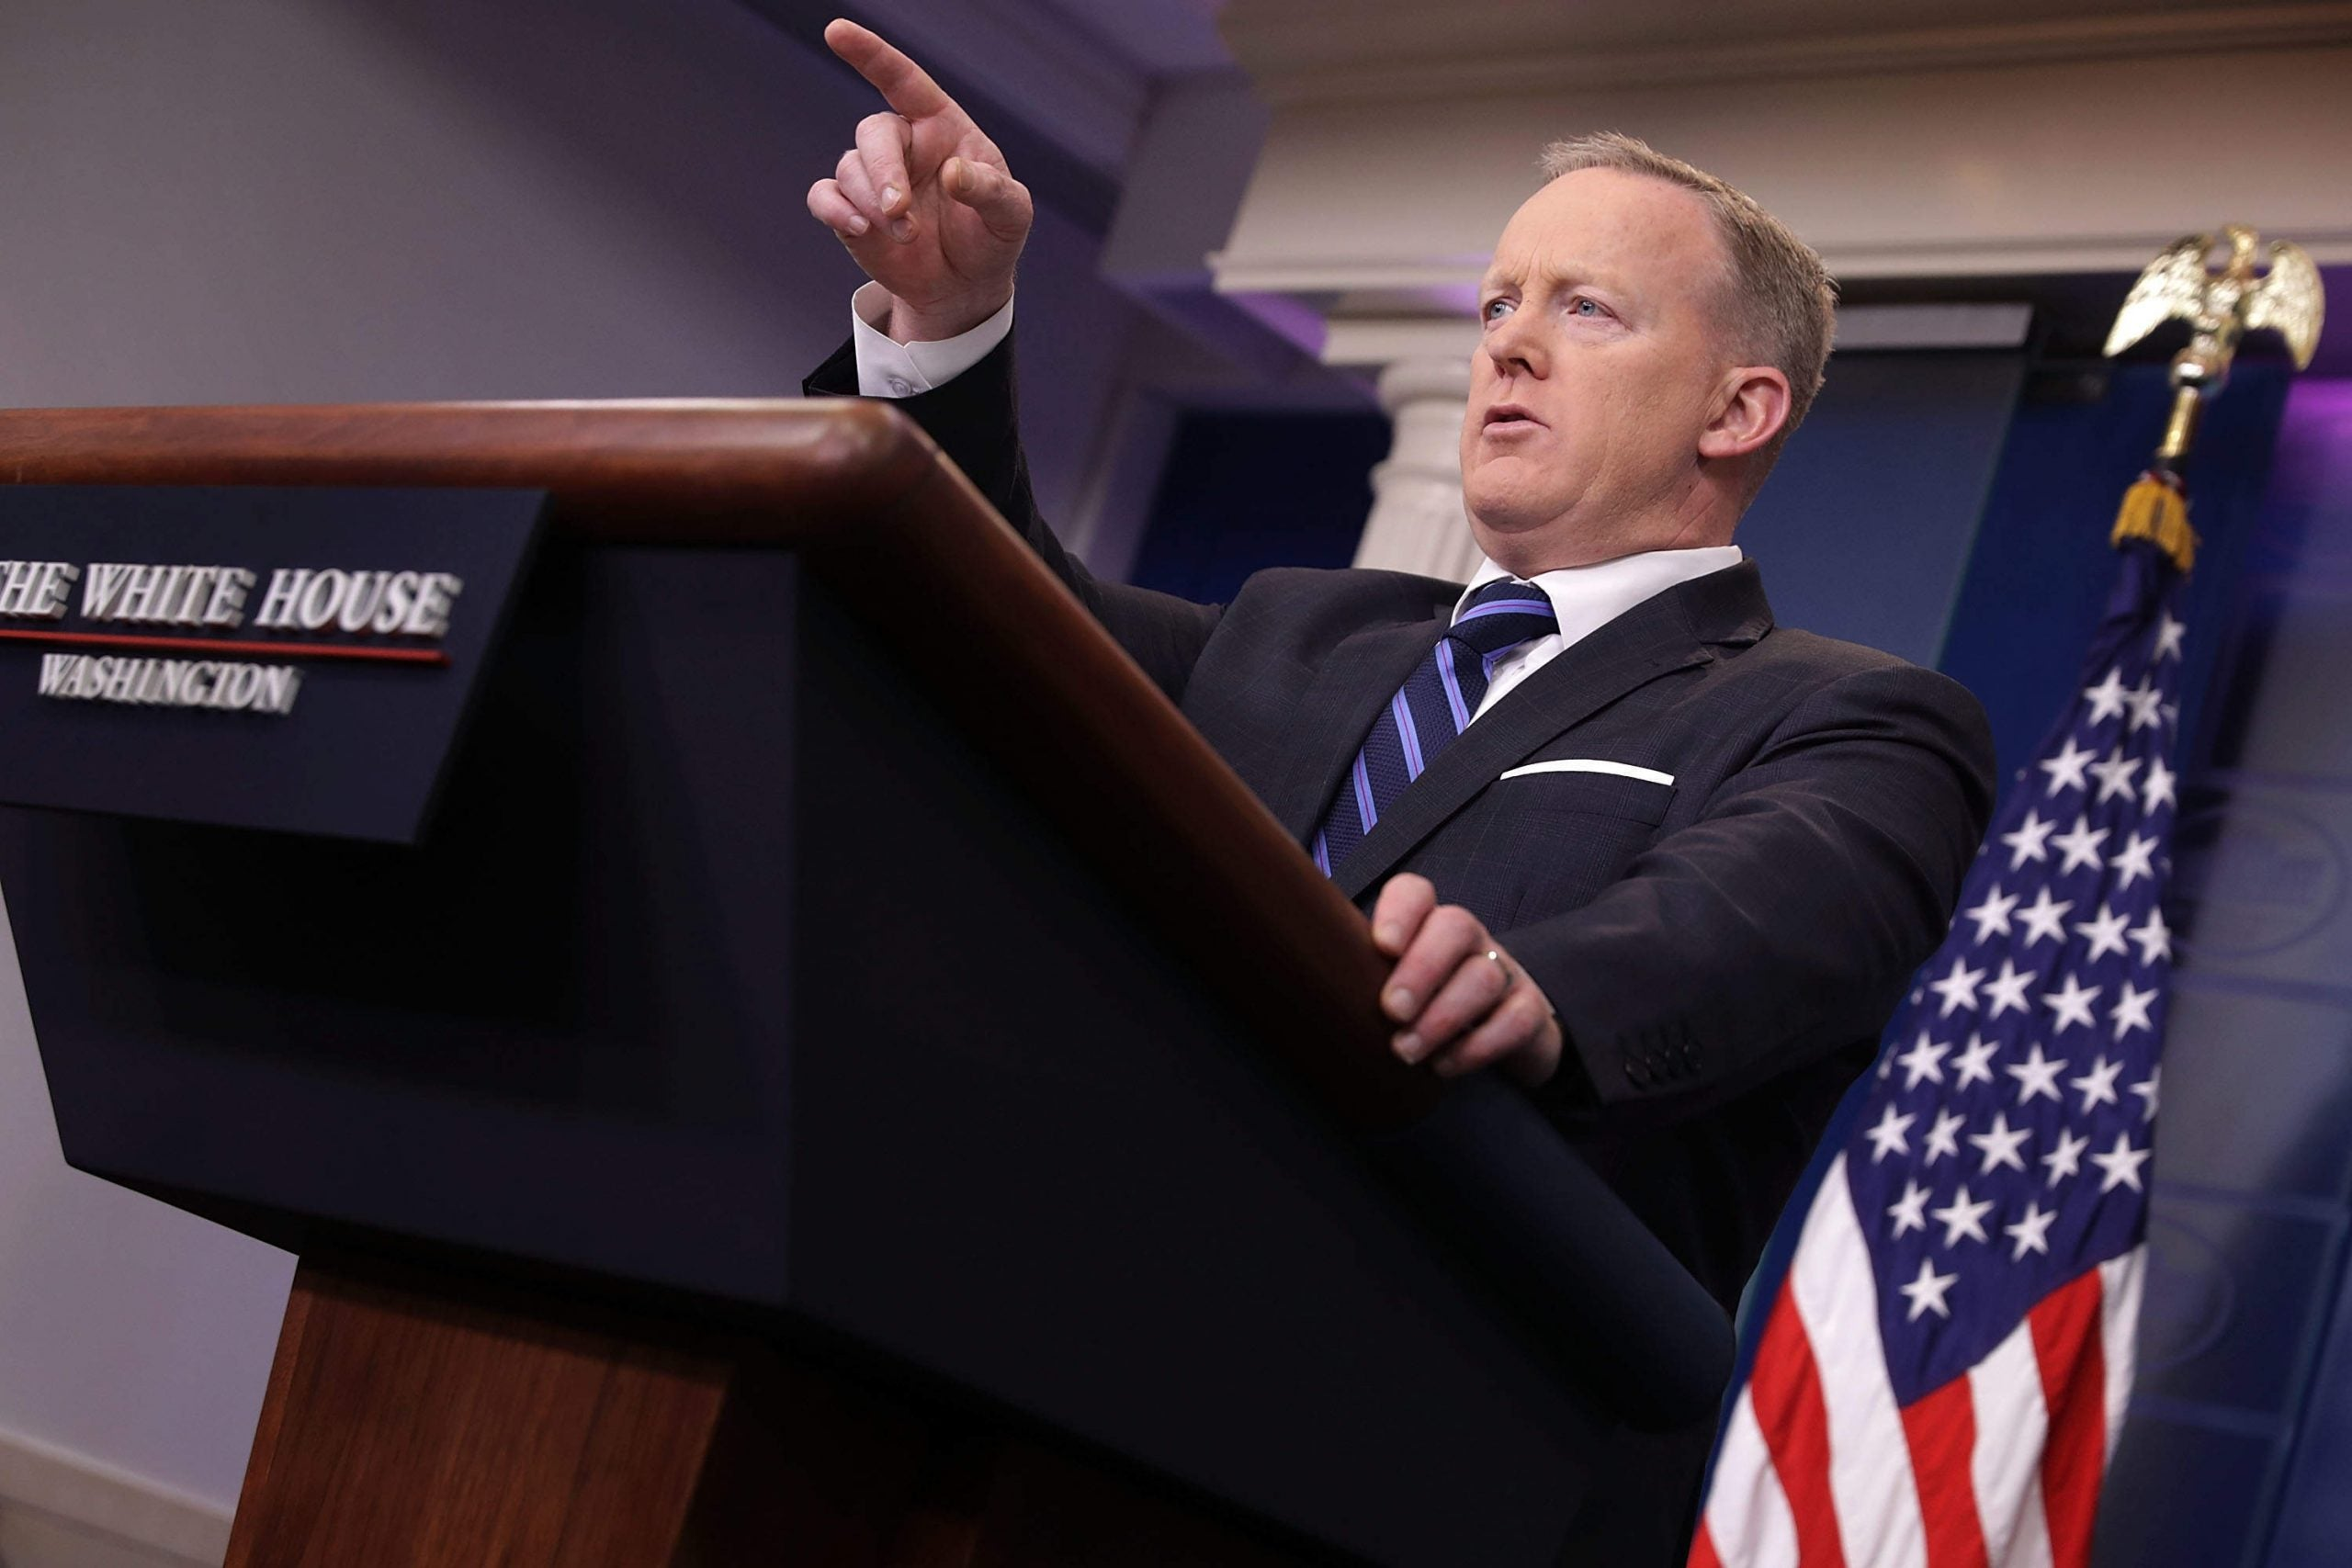 Trump's spokesman Sean Spicer came over as either antisemitic or clueless - neither is a great look